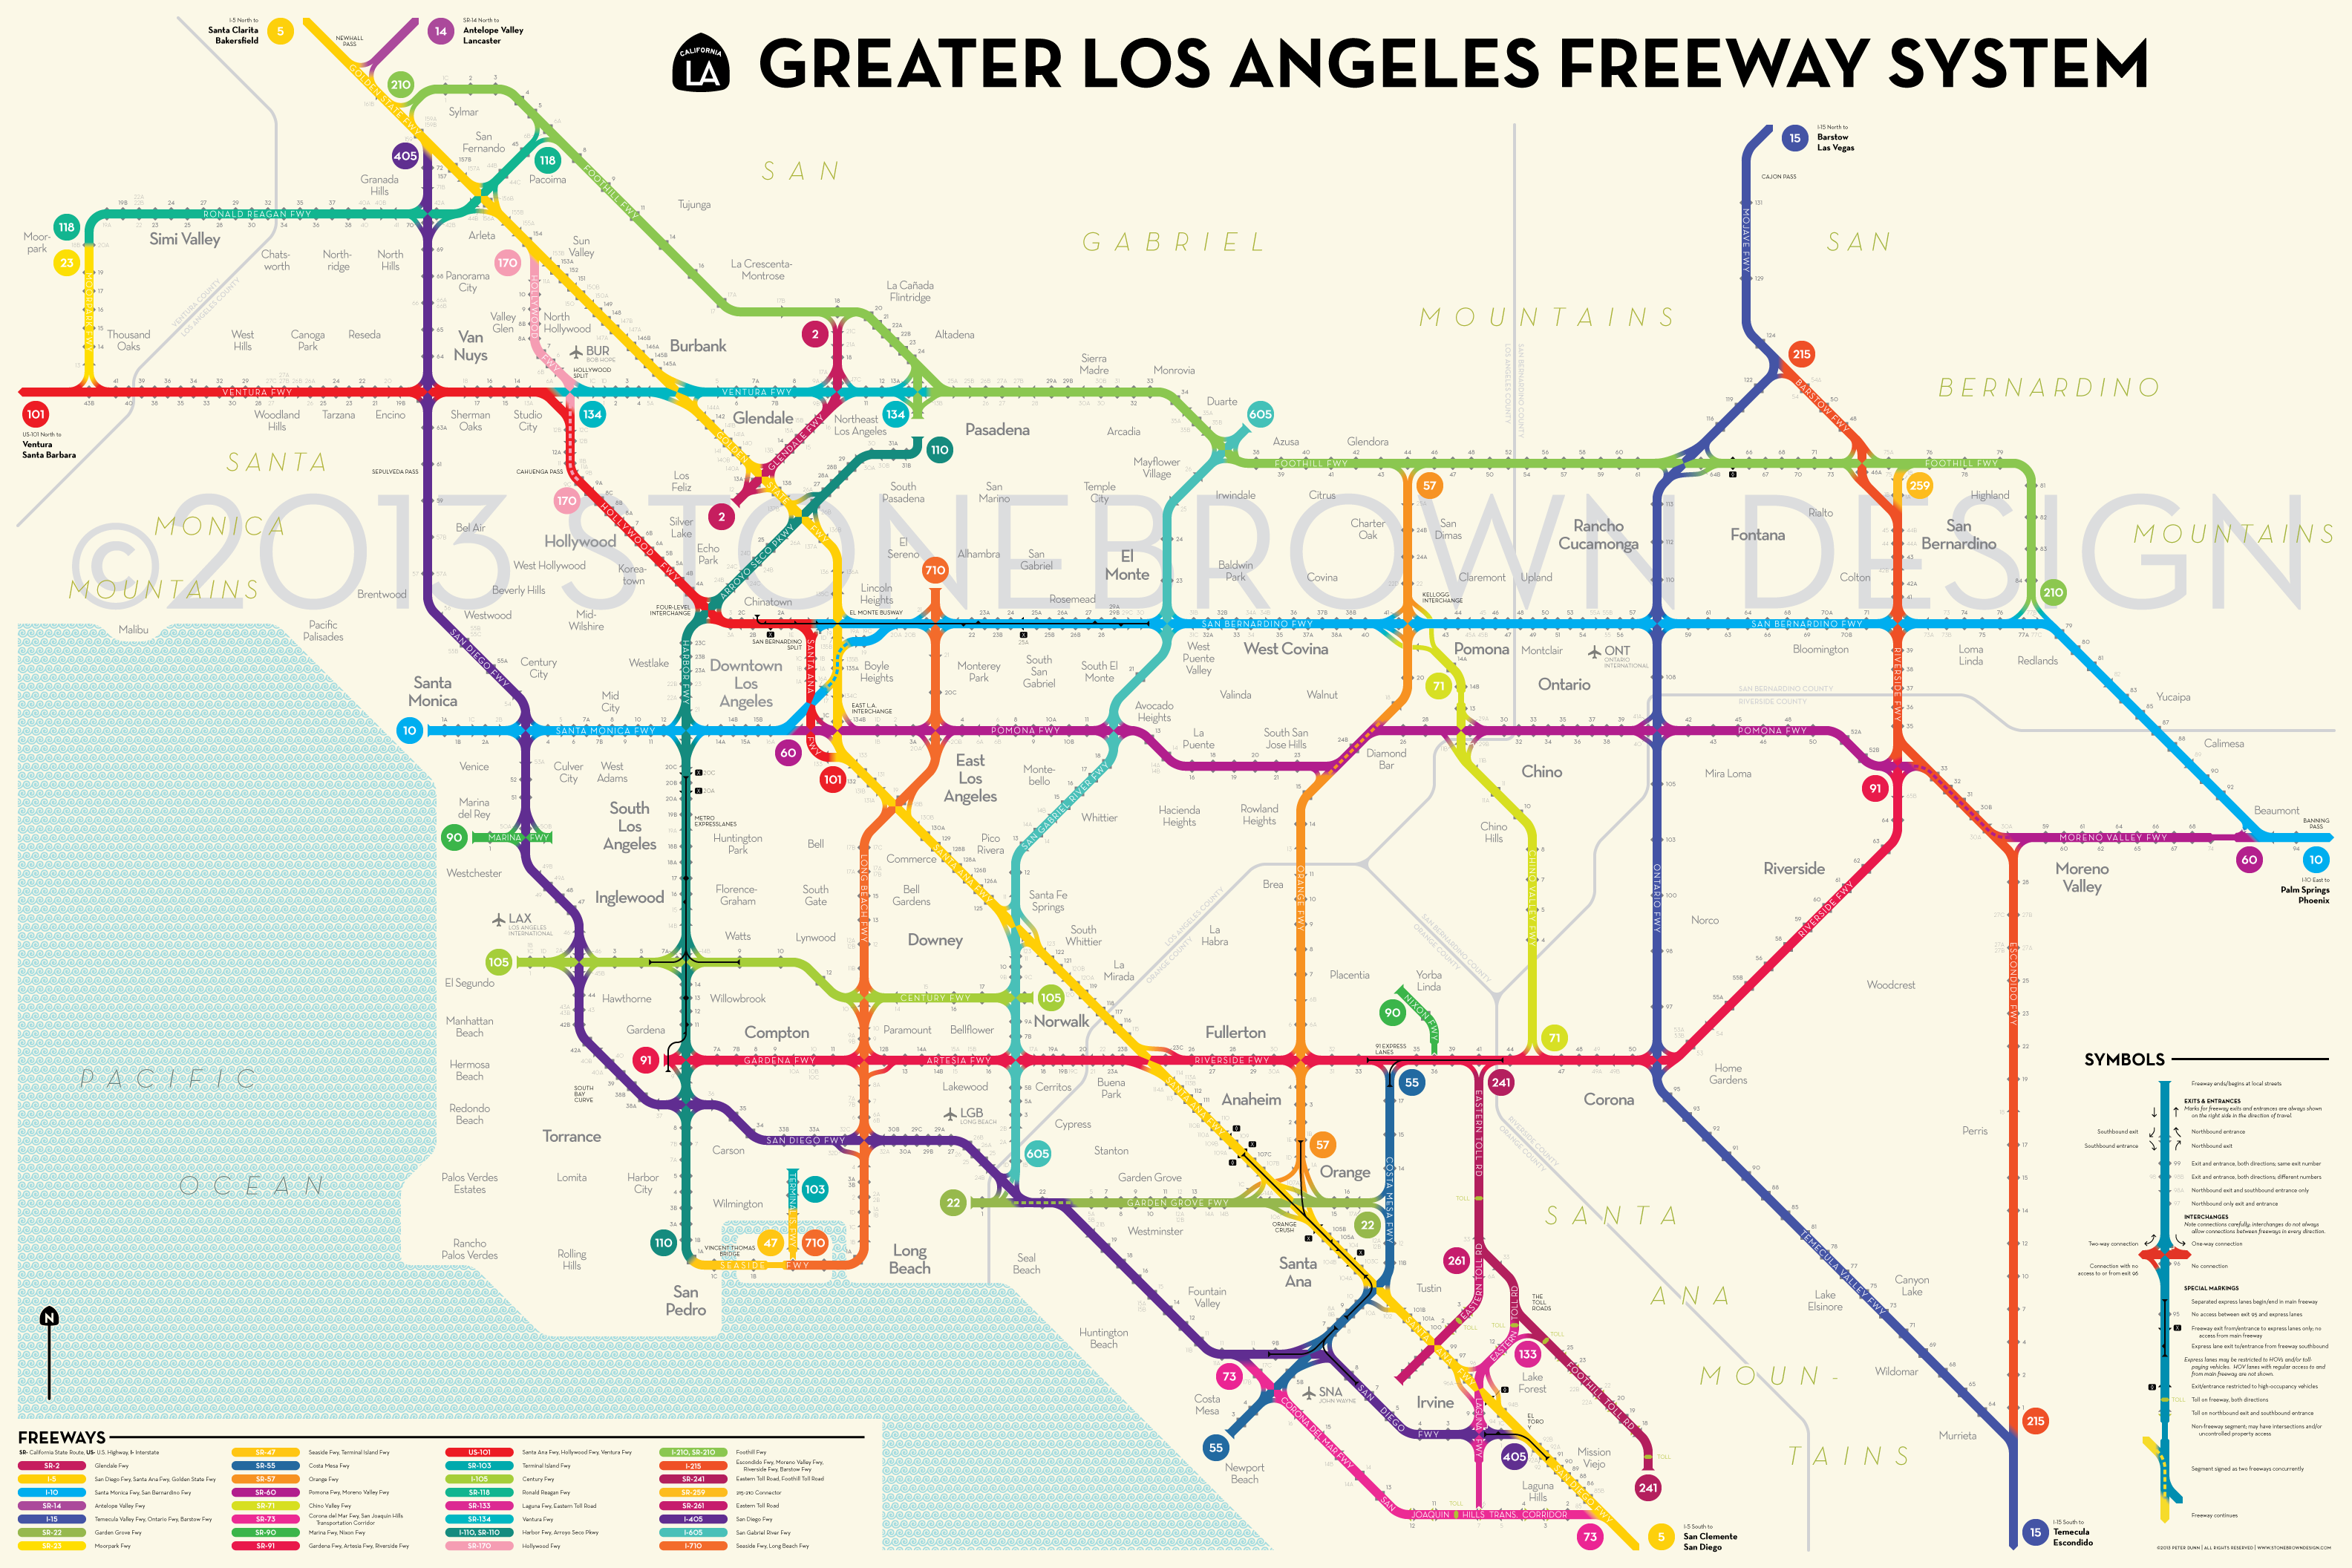 photograph about Printable Map of Los Angeles titled Los Angeles Freeways